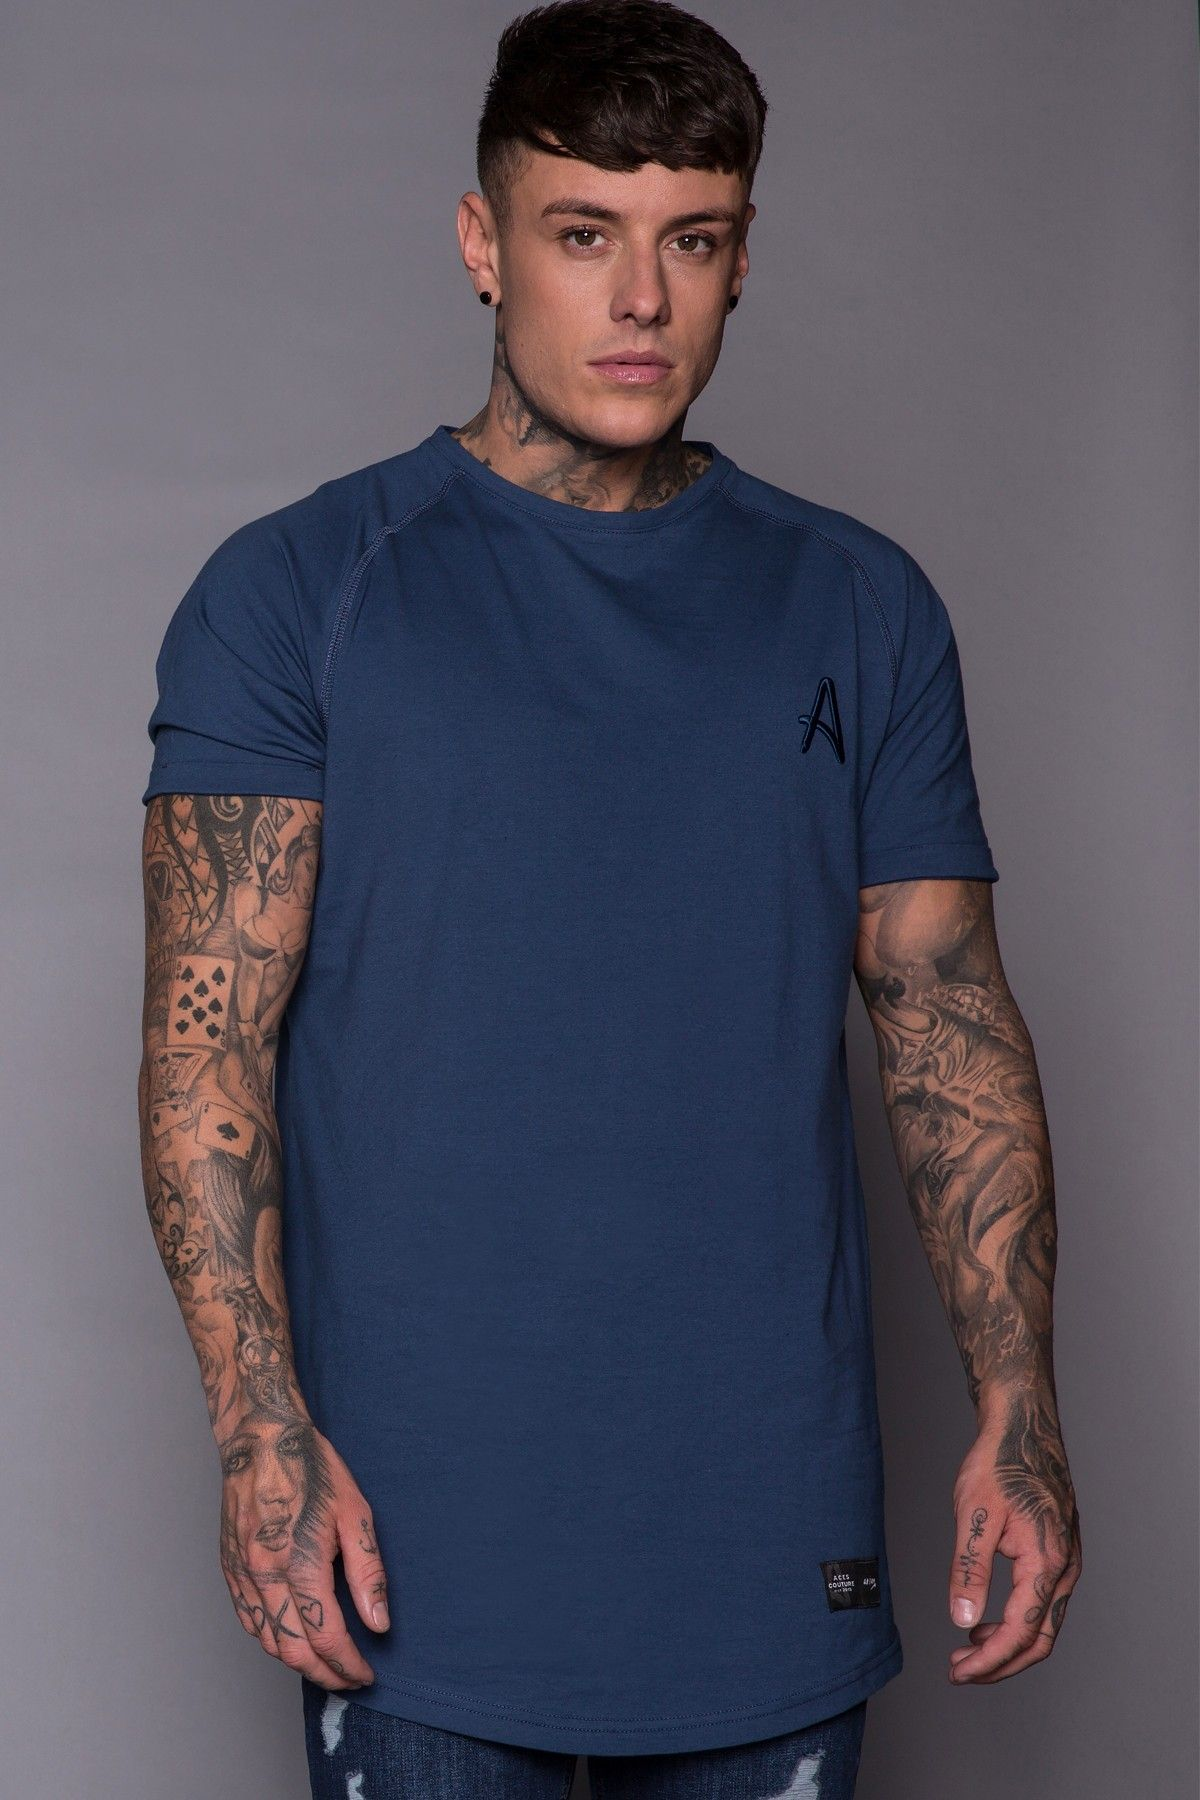 Pin by Liam Griffiths on Gift ideas Mens tshirts, Mens